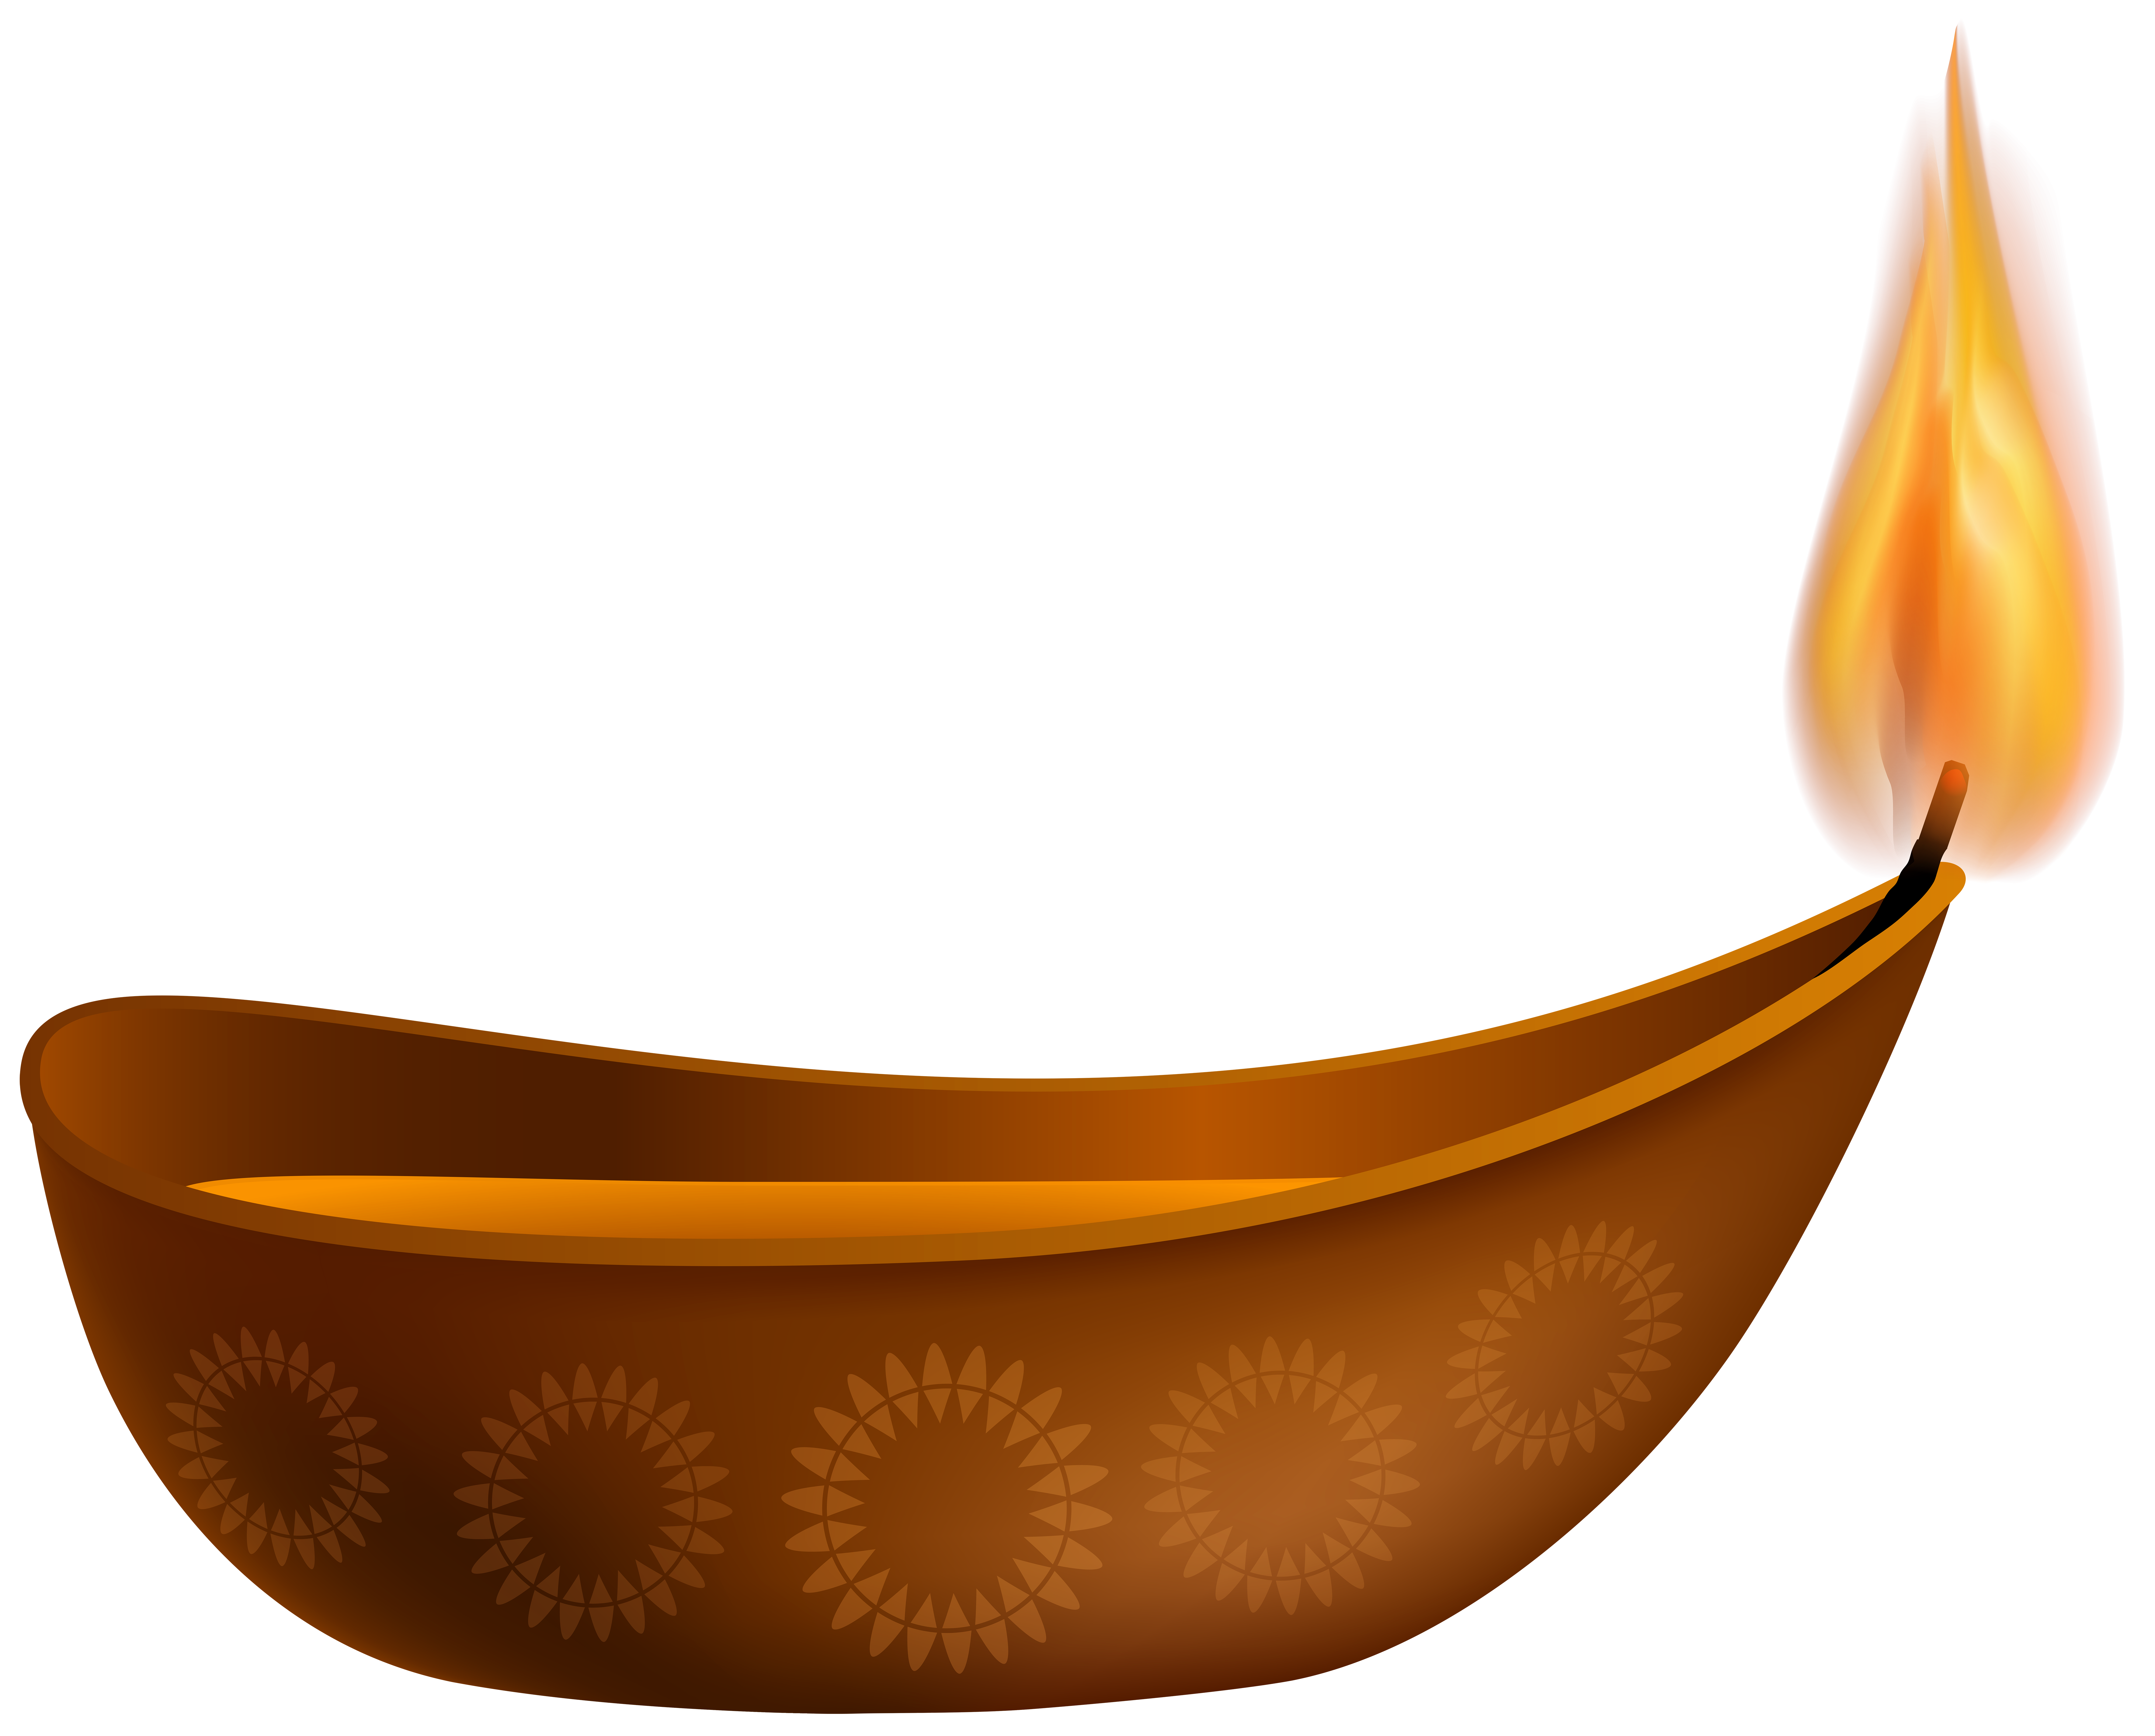 8000x6444 Happy Diwali Candle Png Transparent Clip Art Imageu200b Gallery